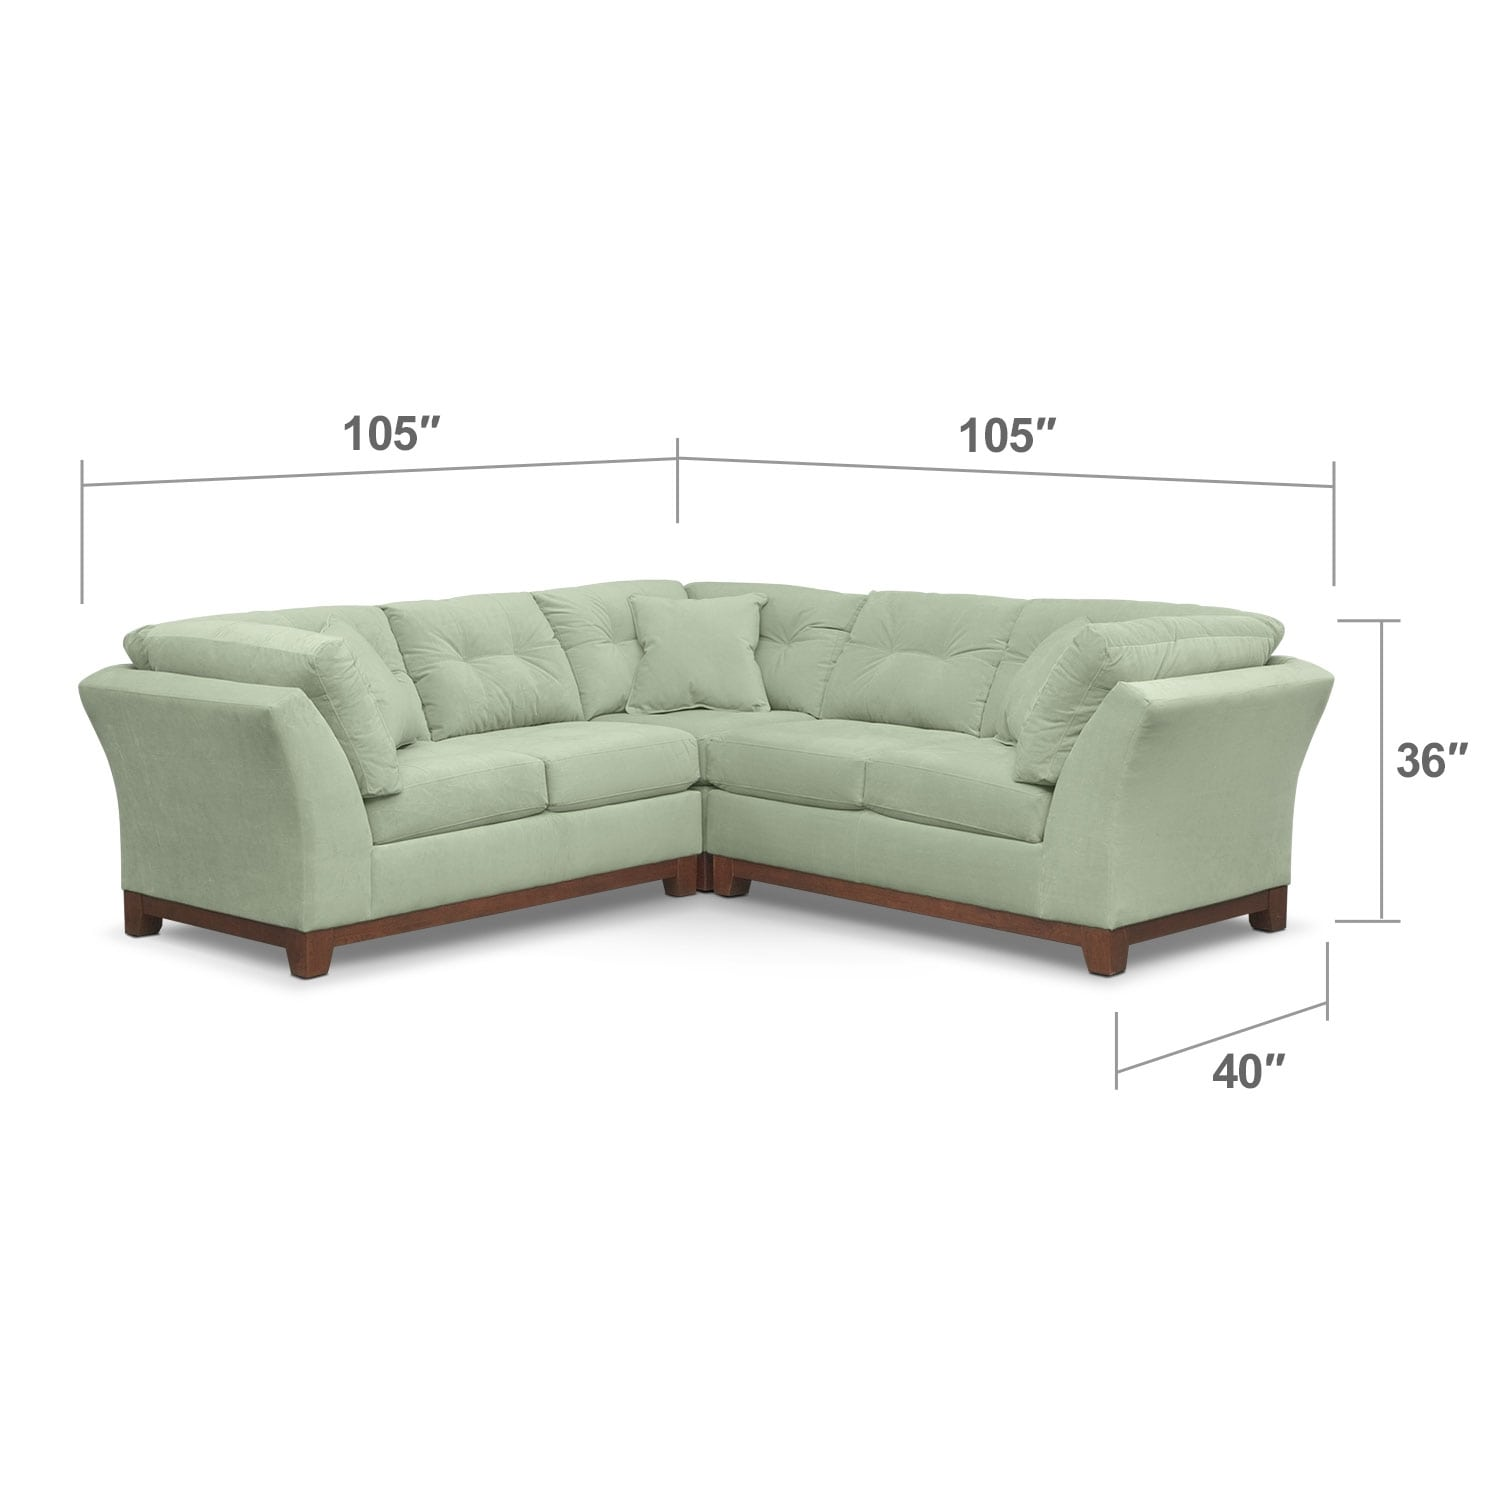 Living Room Furniture - Solace 3-Piece Sectional - Spa